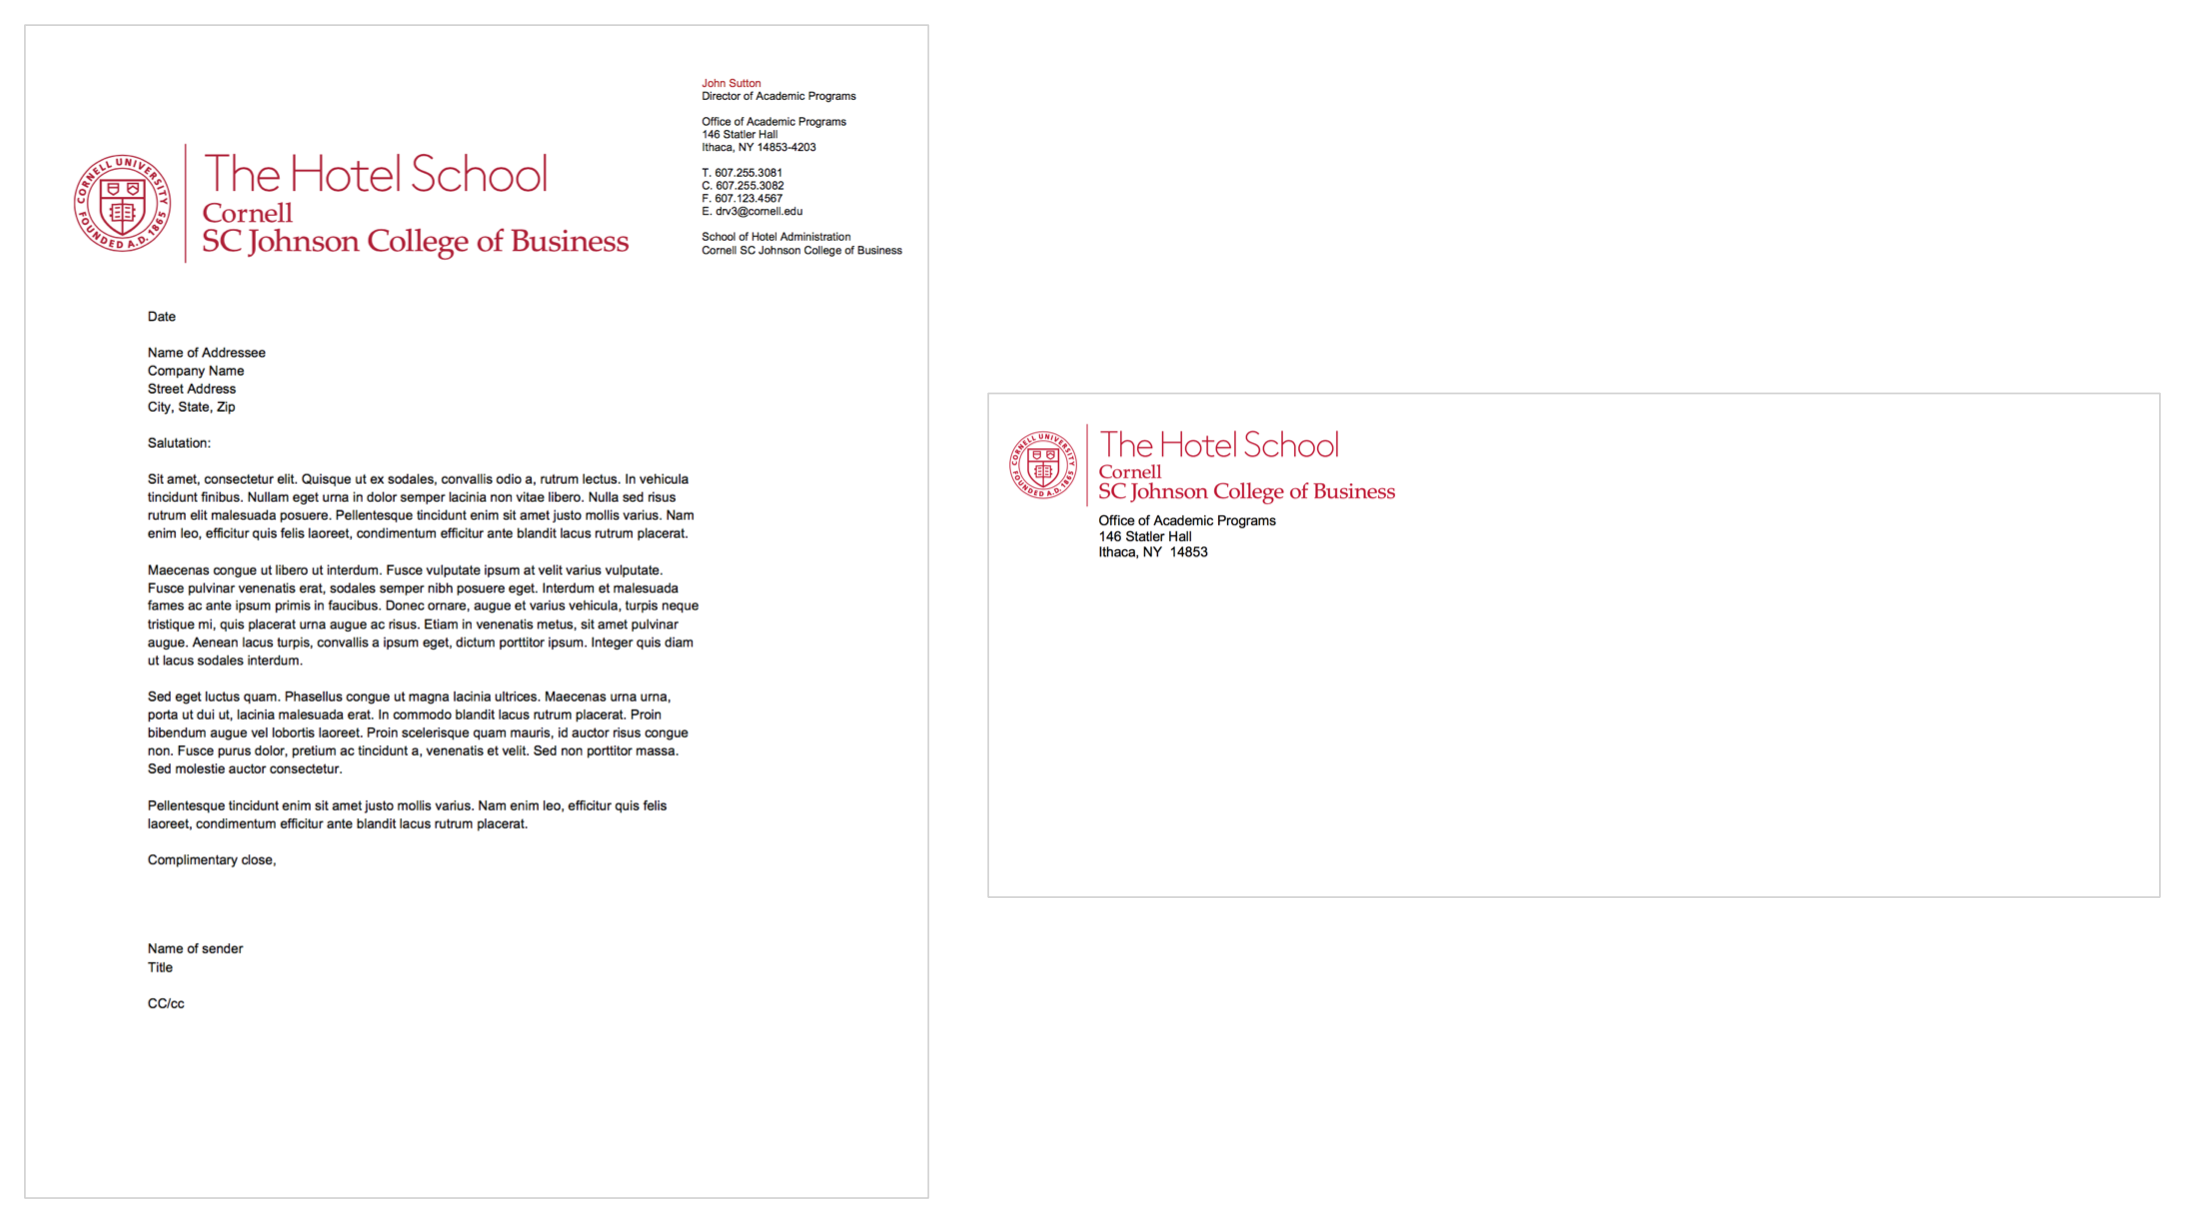 The Hotel School Mail